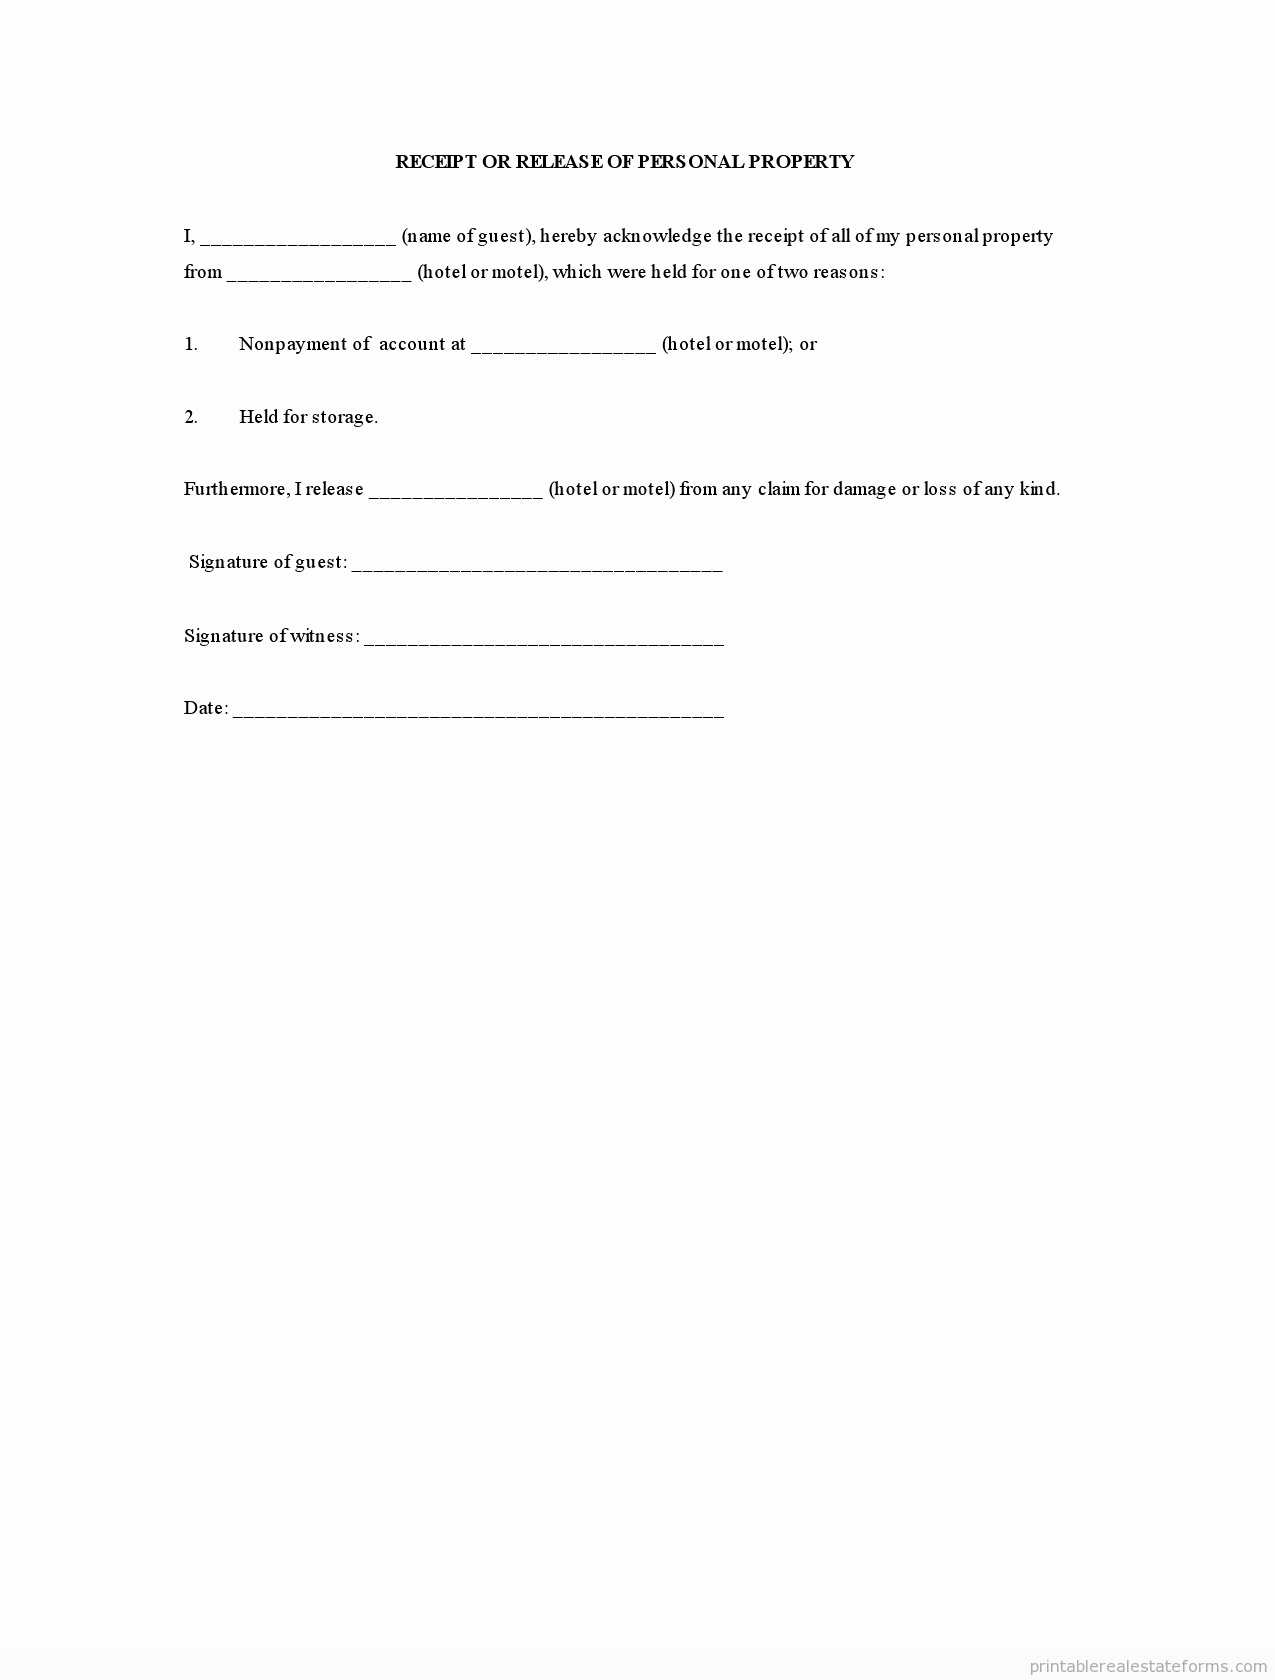 Personal Property Release form Template Fresh Free Personal Property Release form Sample Letter Pdf